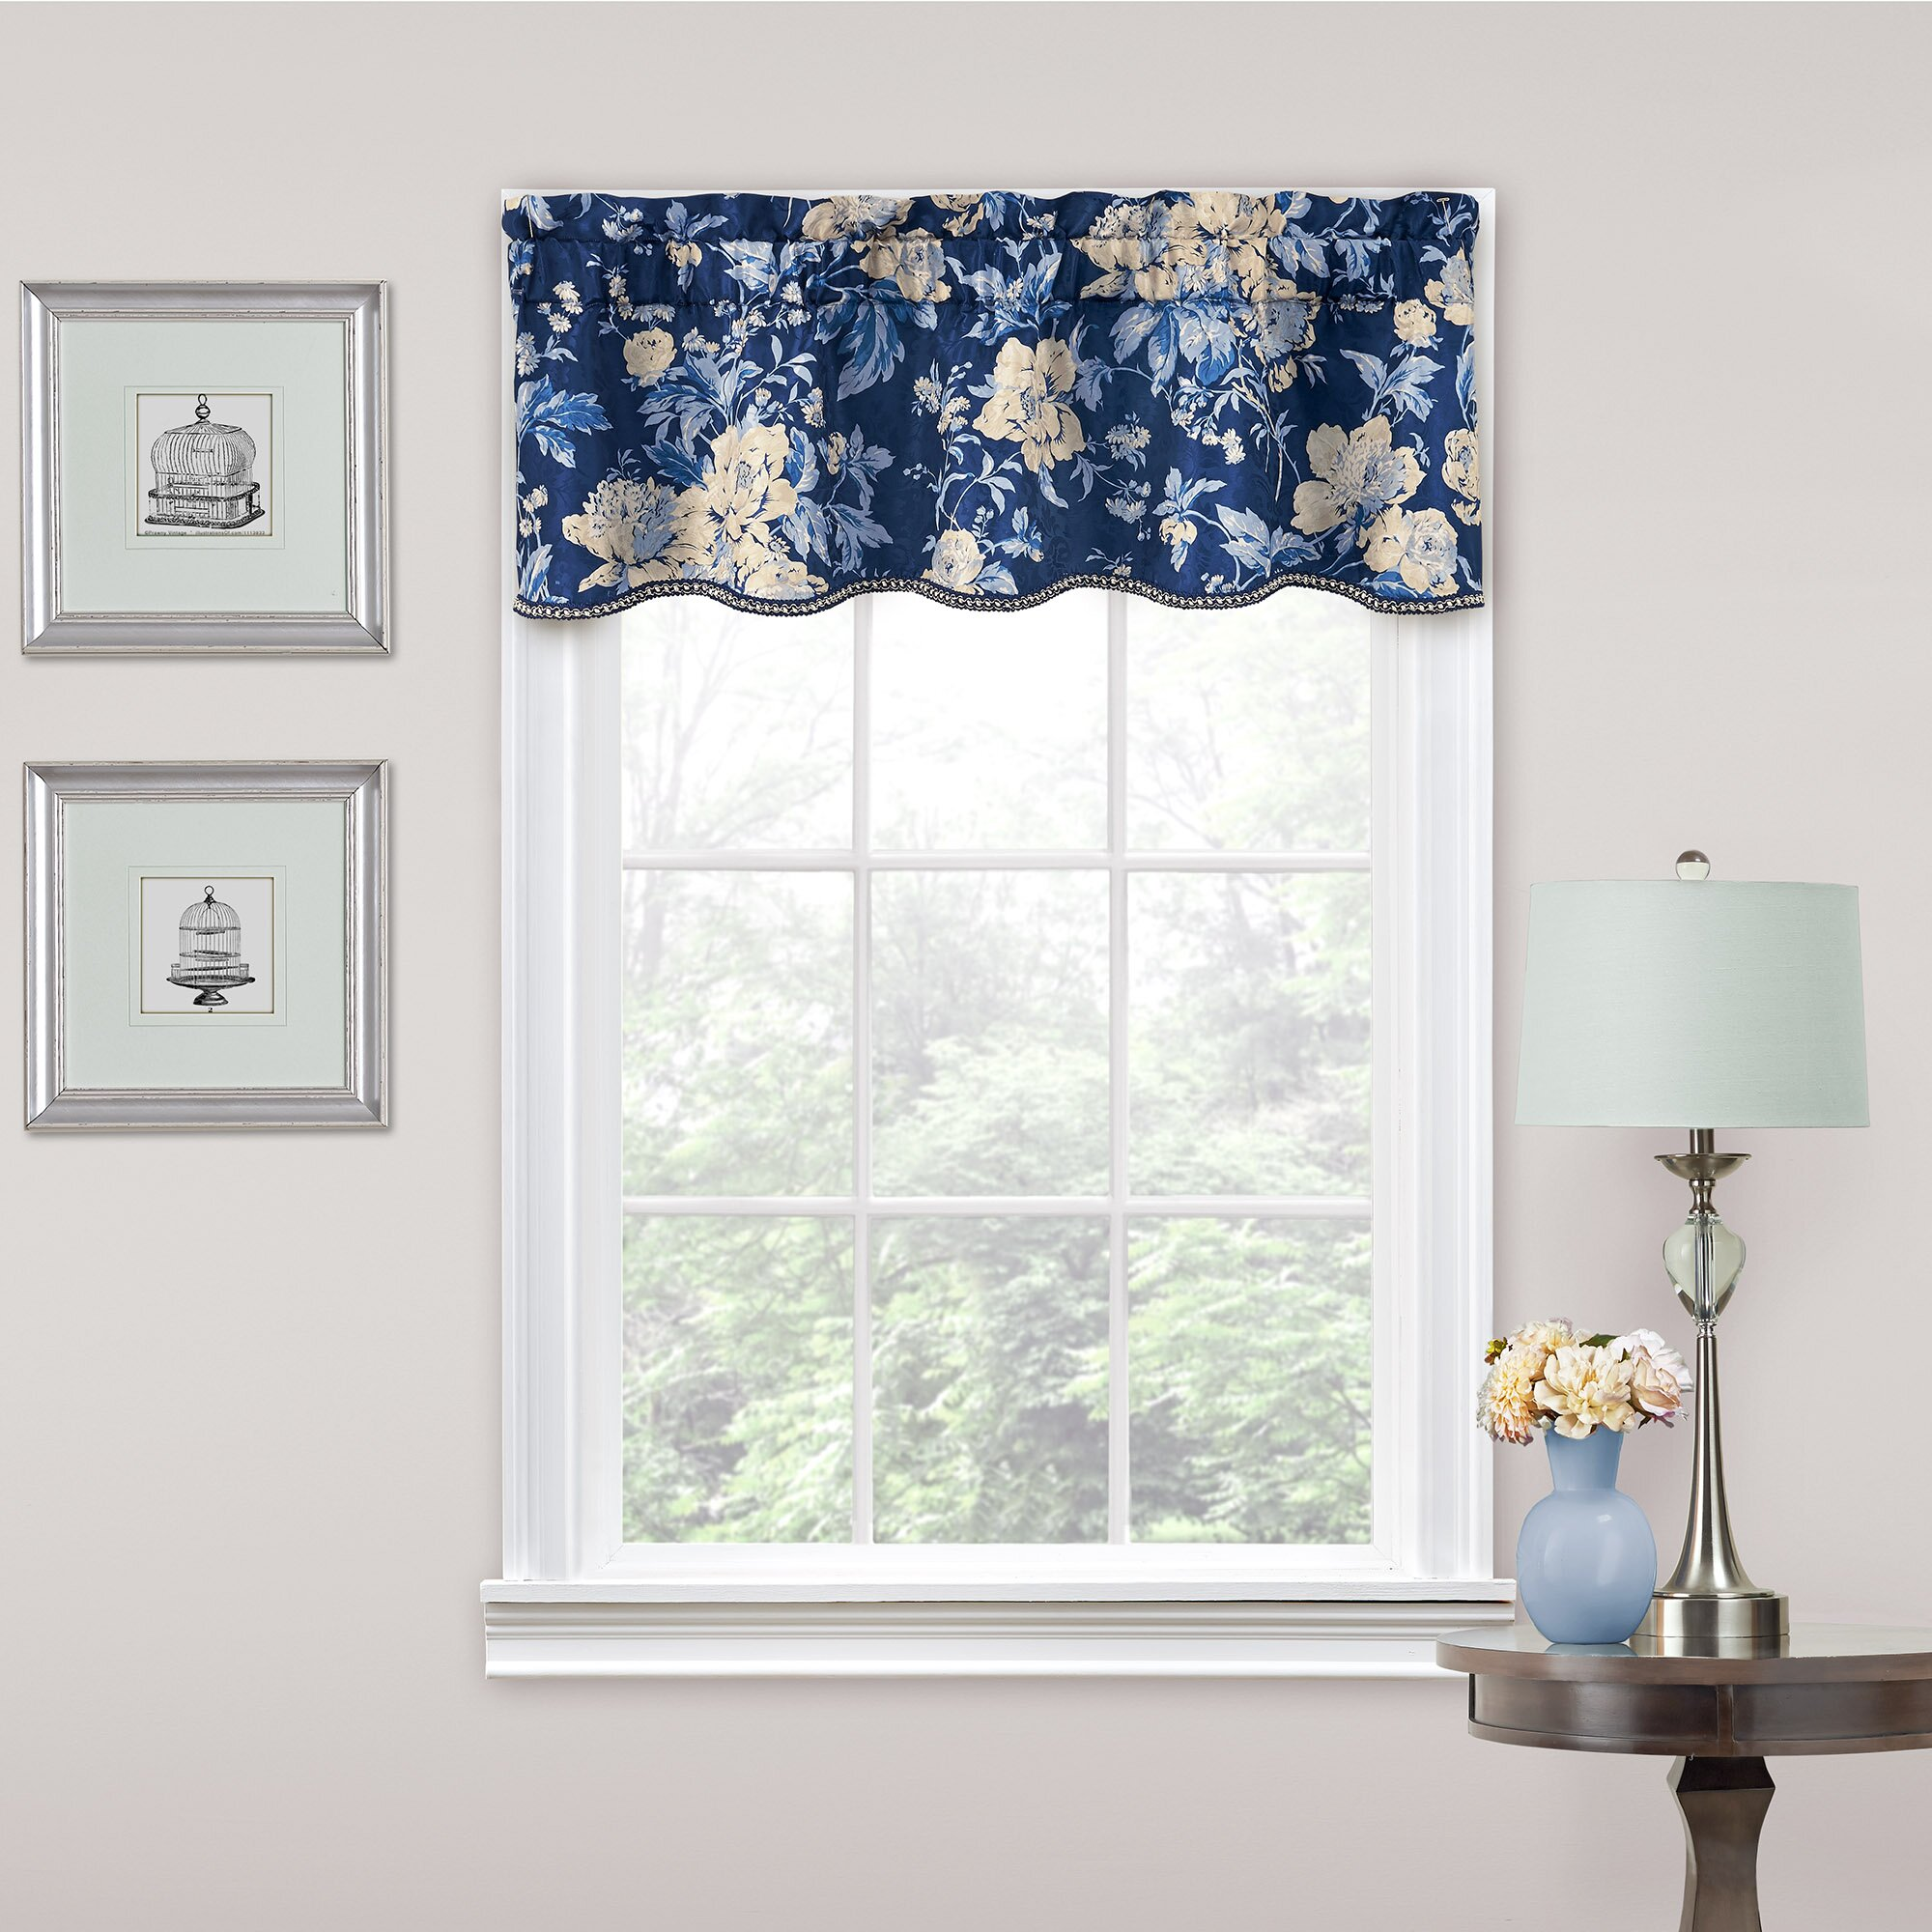 Curtain track cover - Traditions By Waverly Forever Yours Floral 52 Quot Curtain Valance